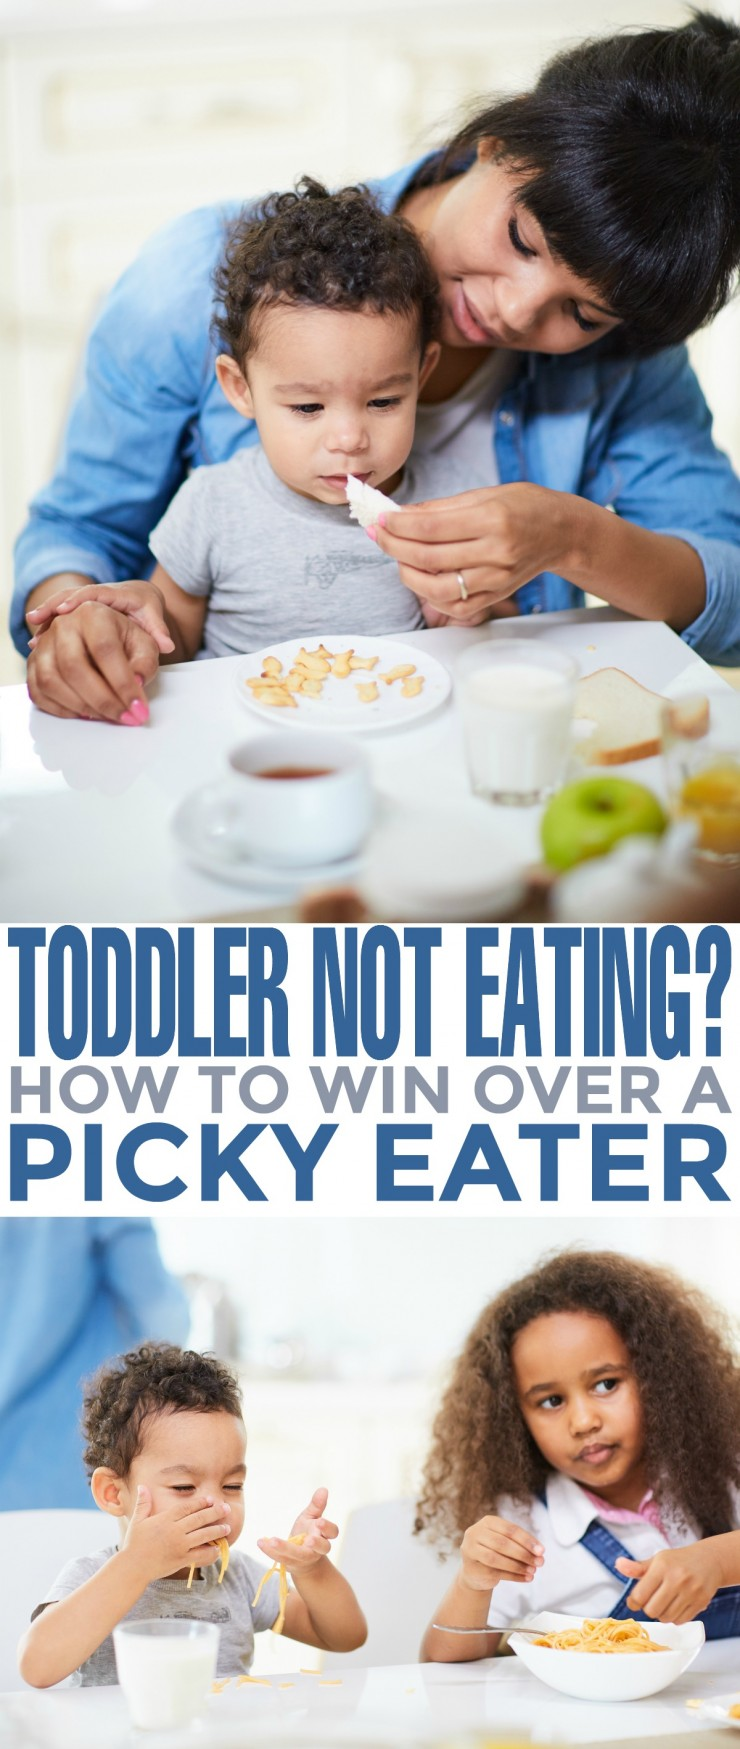 Toddler Not Eating? How to Win Over a Picky Eater. Having a picky eater can be very stressful for a parent. When your toddler won't eat, it can quickly transform mealtime into a stressful event.